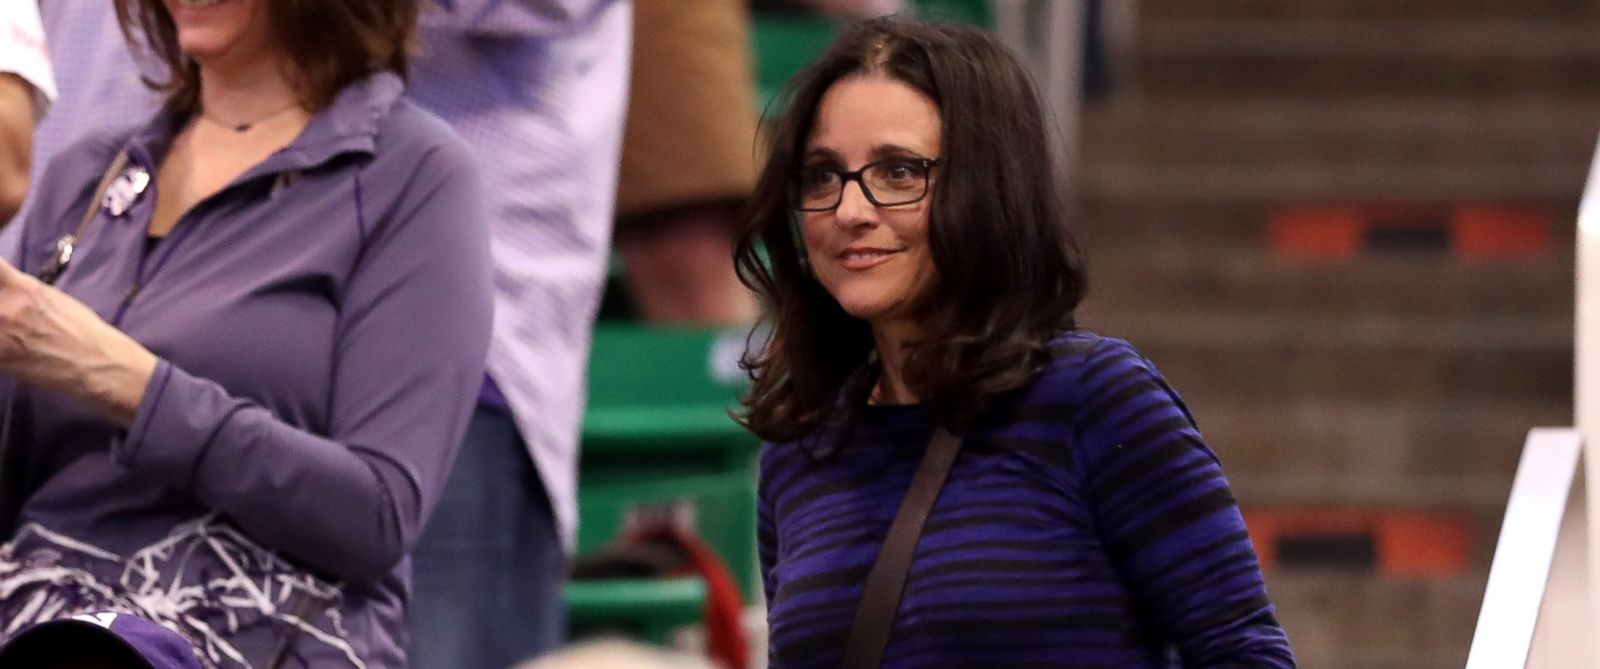 PHOTO: Julia Louis-Dreyfus looks on as the Northwestern Wildcats play the Vanderbilt Commodores during the first round of the 2017 NCAA Mens Basketball Tournament at Vivint Smart Home Arena, March 16, 2017, in Salt Lake City, Utah.